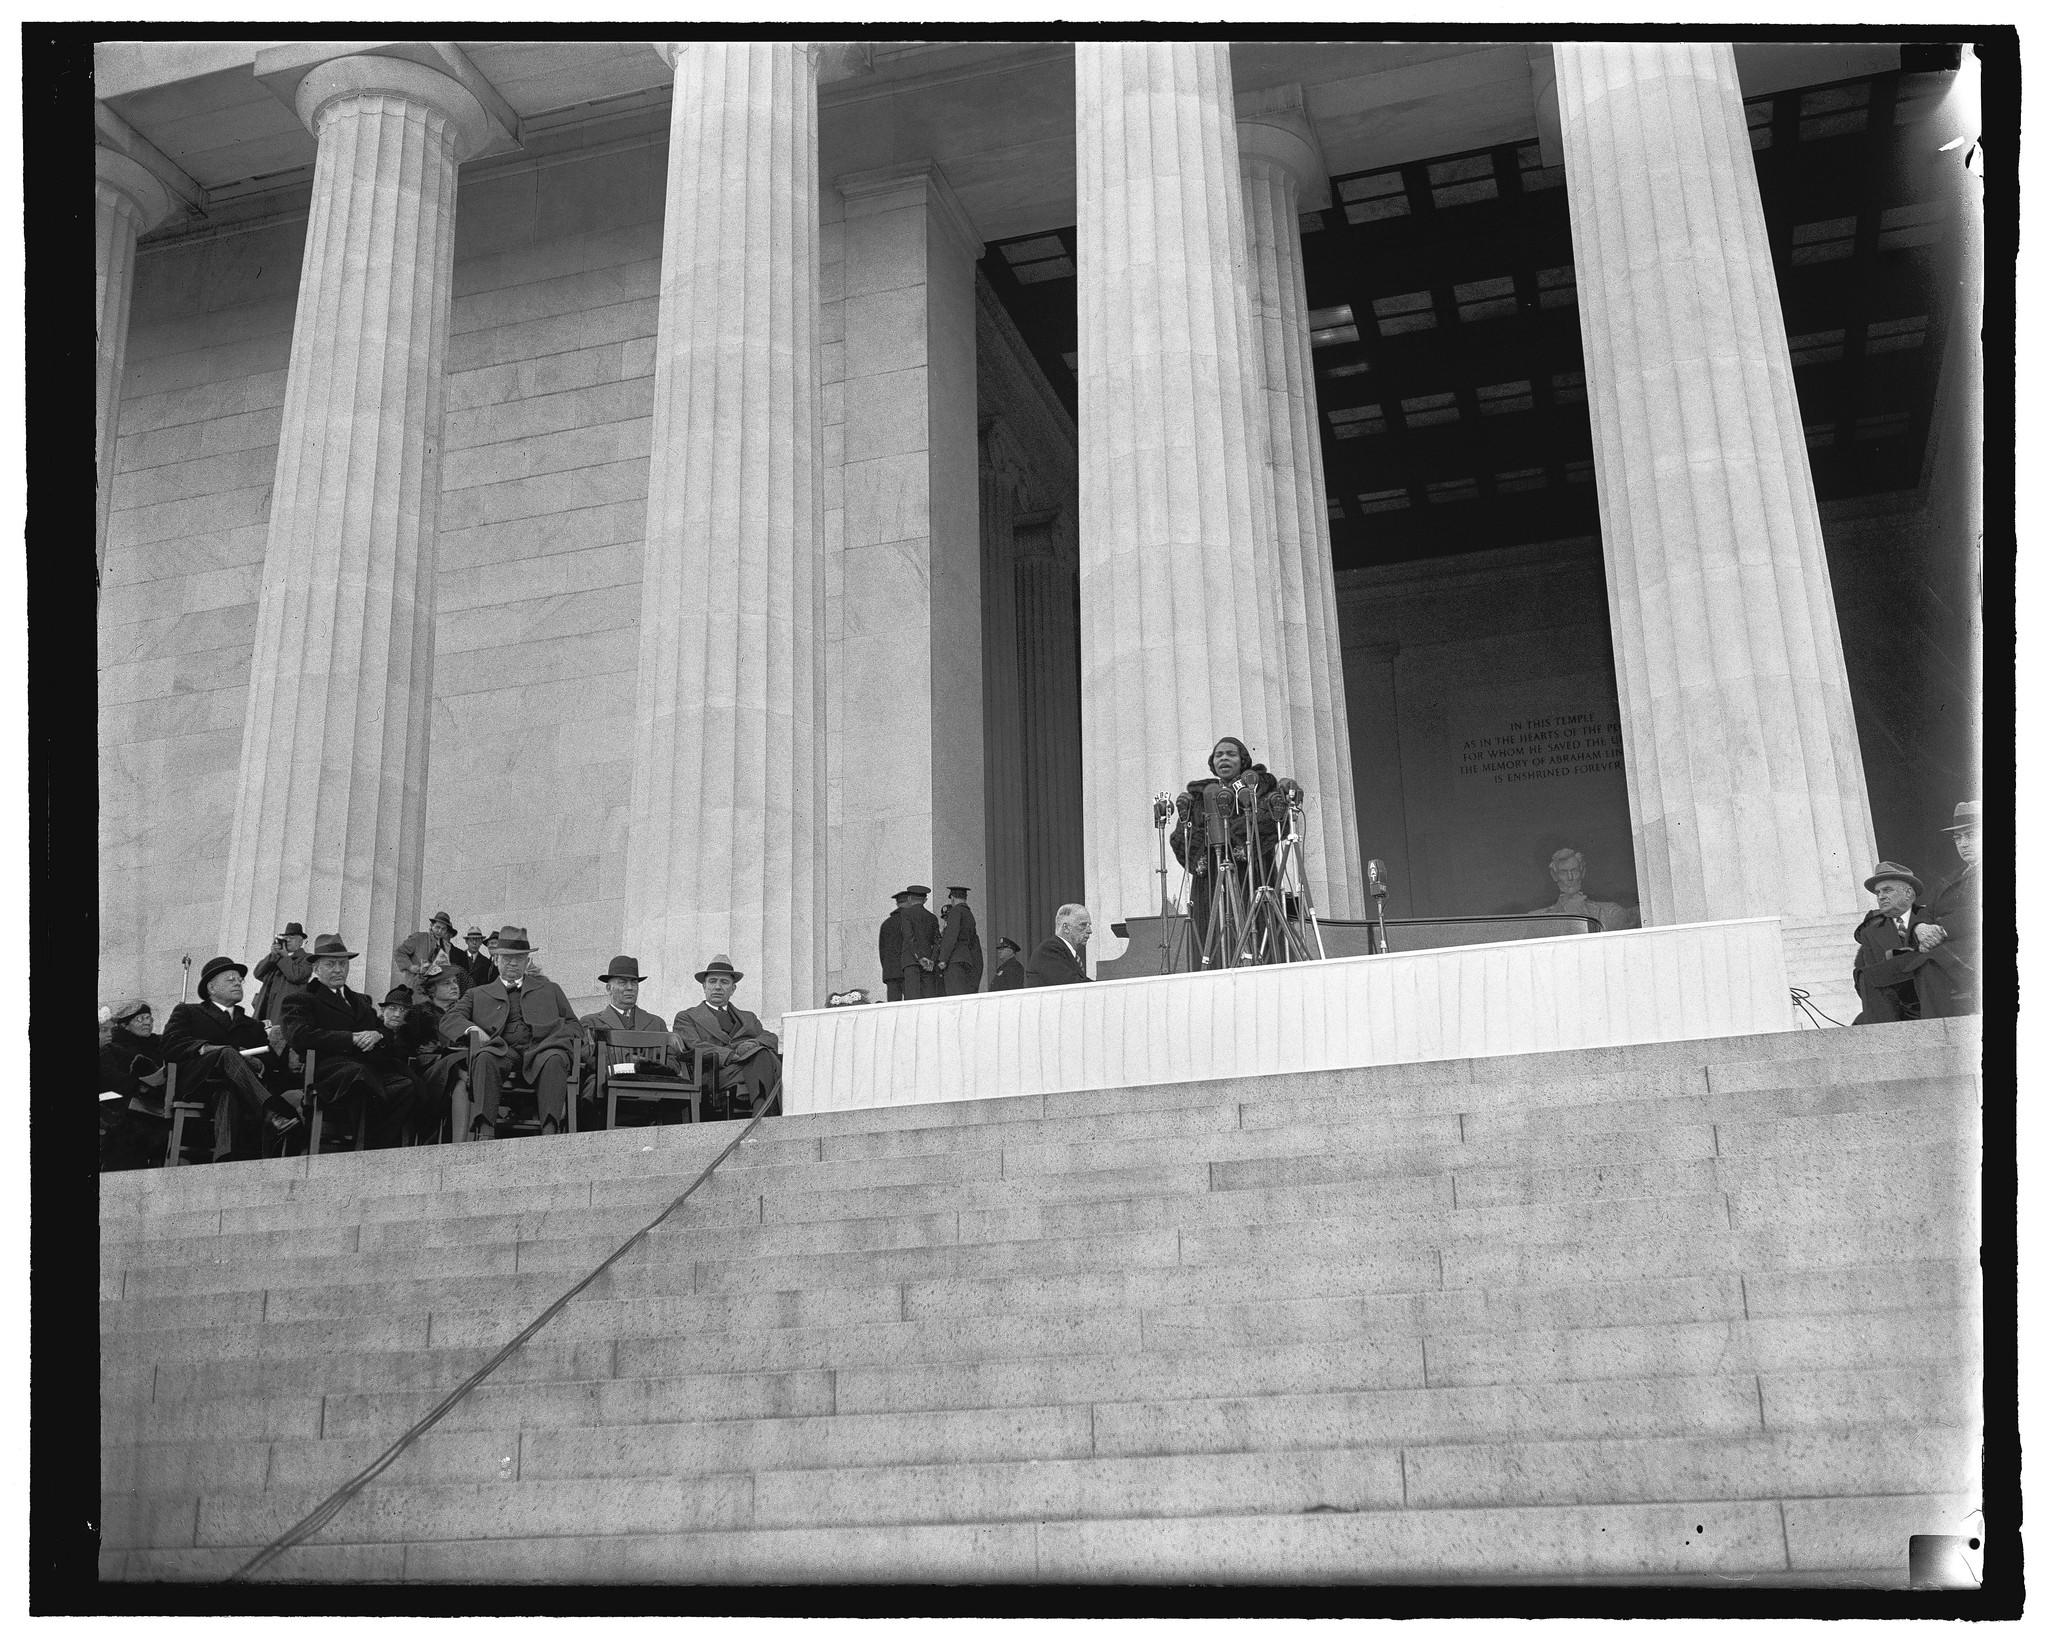 Marian Anderson sings at the Lincoln Memorial on Easter Day in 1939 to an audience of 75,000 on the Mall. Cabinet members and senators are seated onstage.